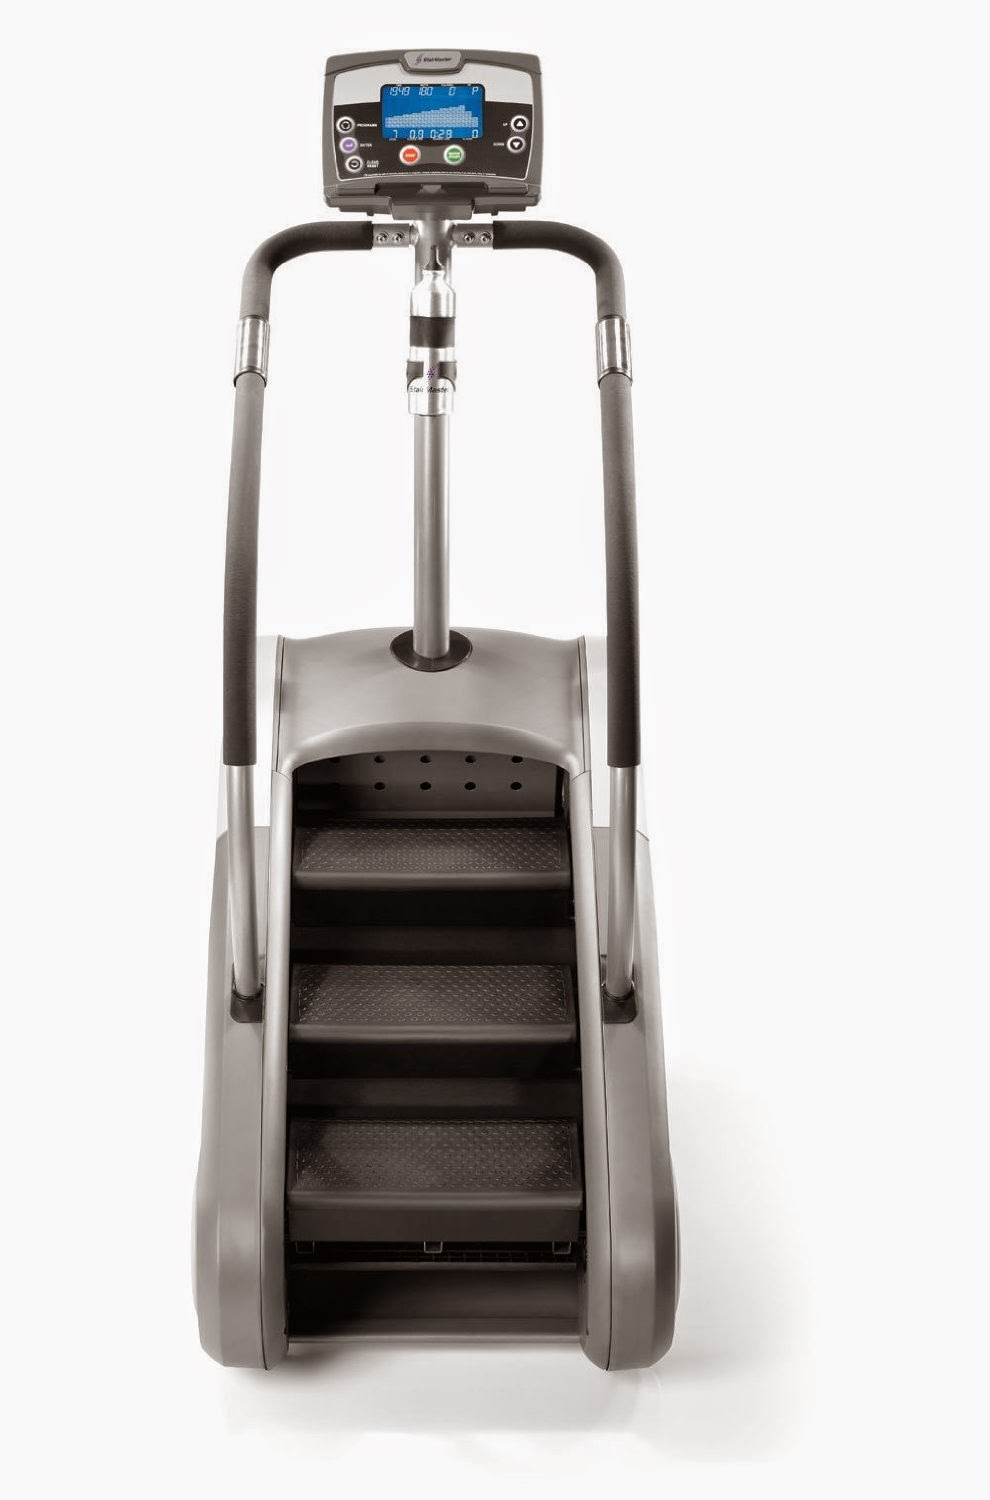 StairMaster StepMill SM3, picture, image, review features & specifications